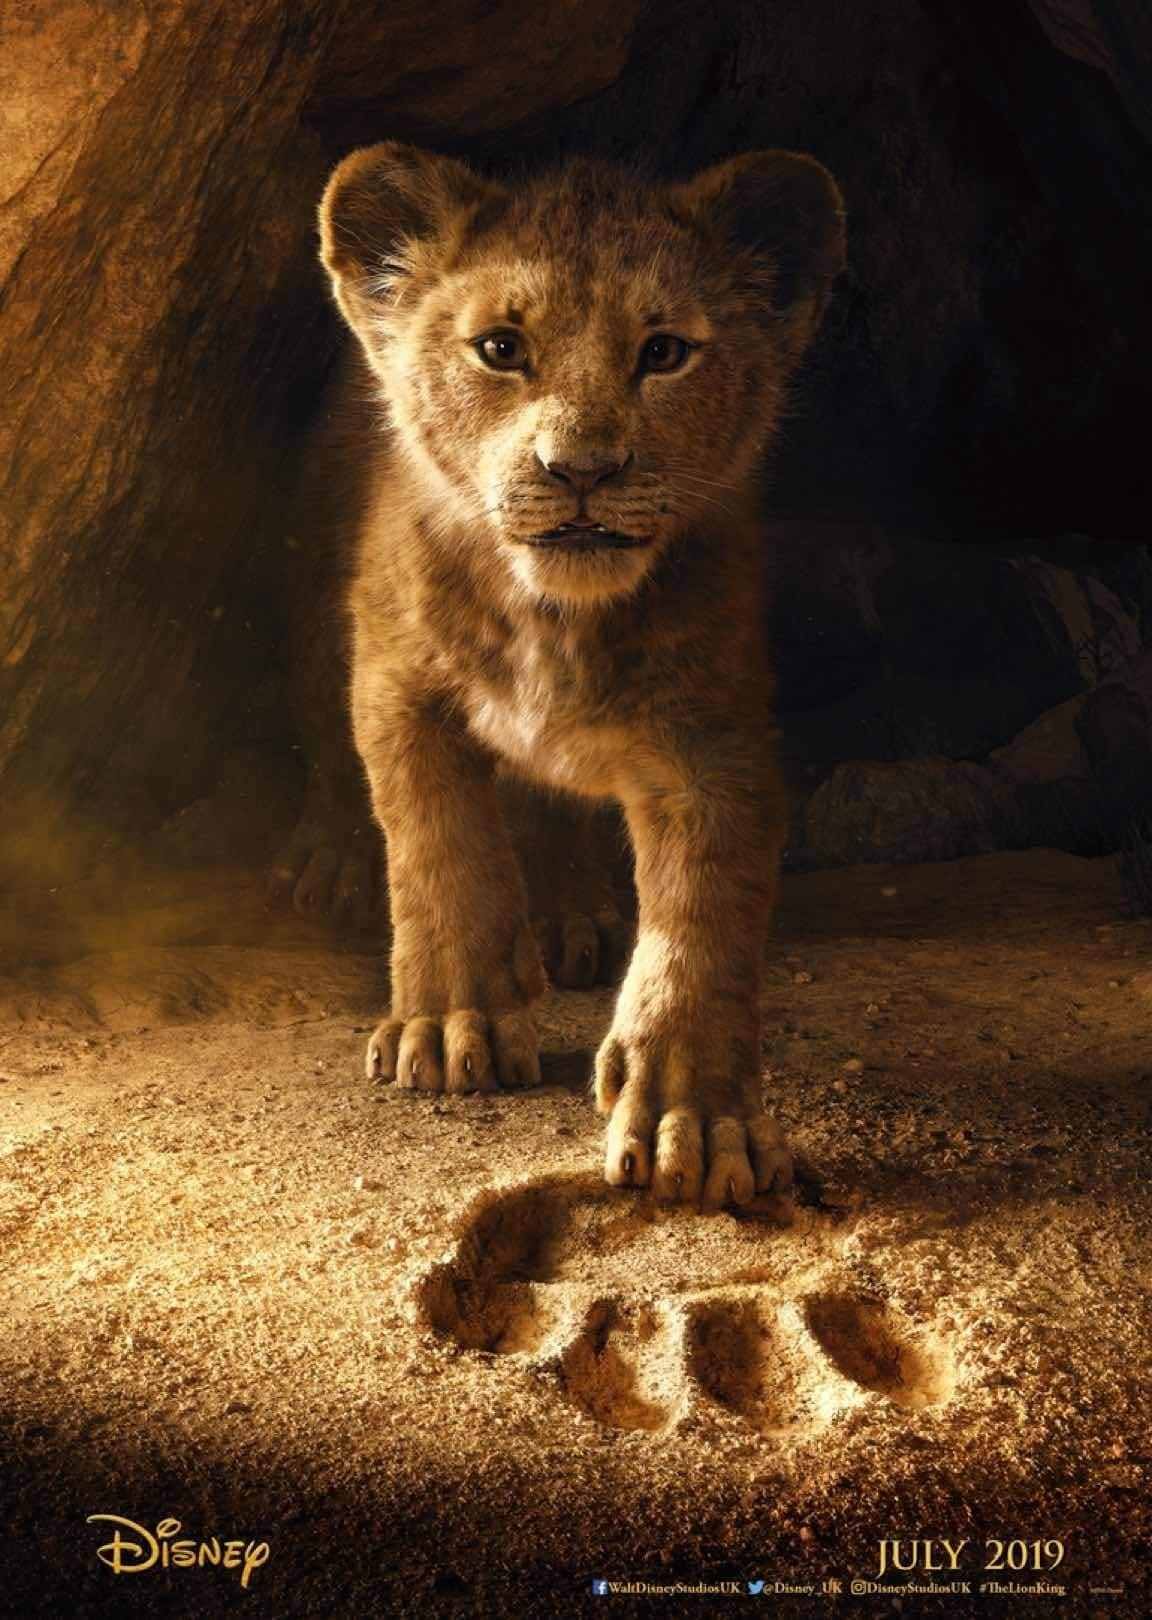 the lion king live action trailer looks amazing and fans